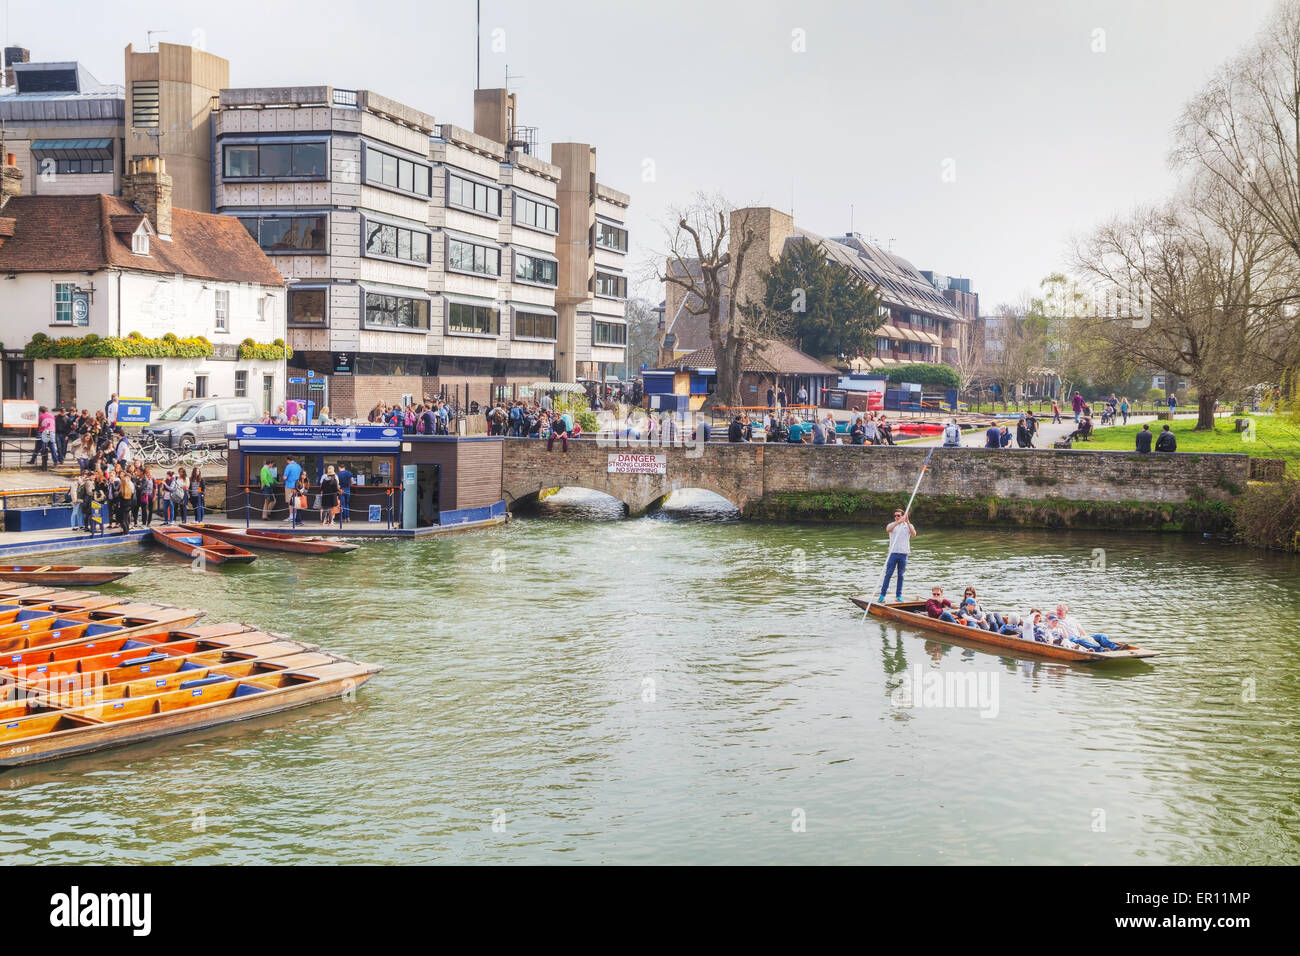 Cambridge, UK - April 9: Punts on Cam river on April 9, 2015 in Cambridge, UK. It's a university city. - Stock Image